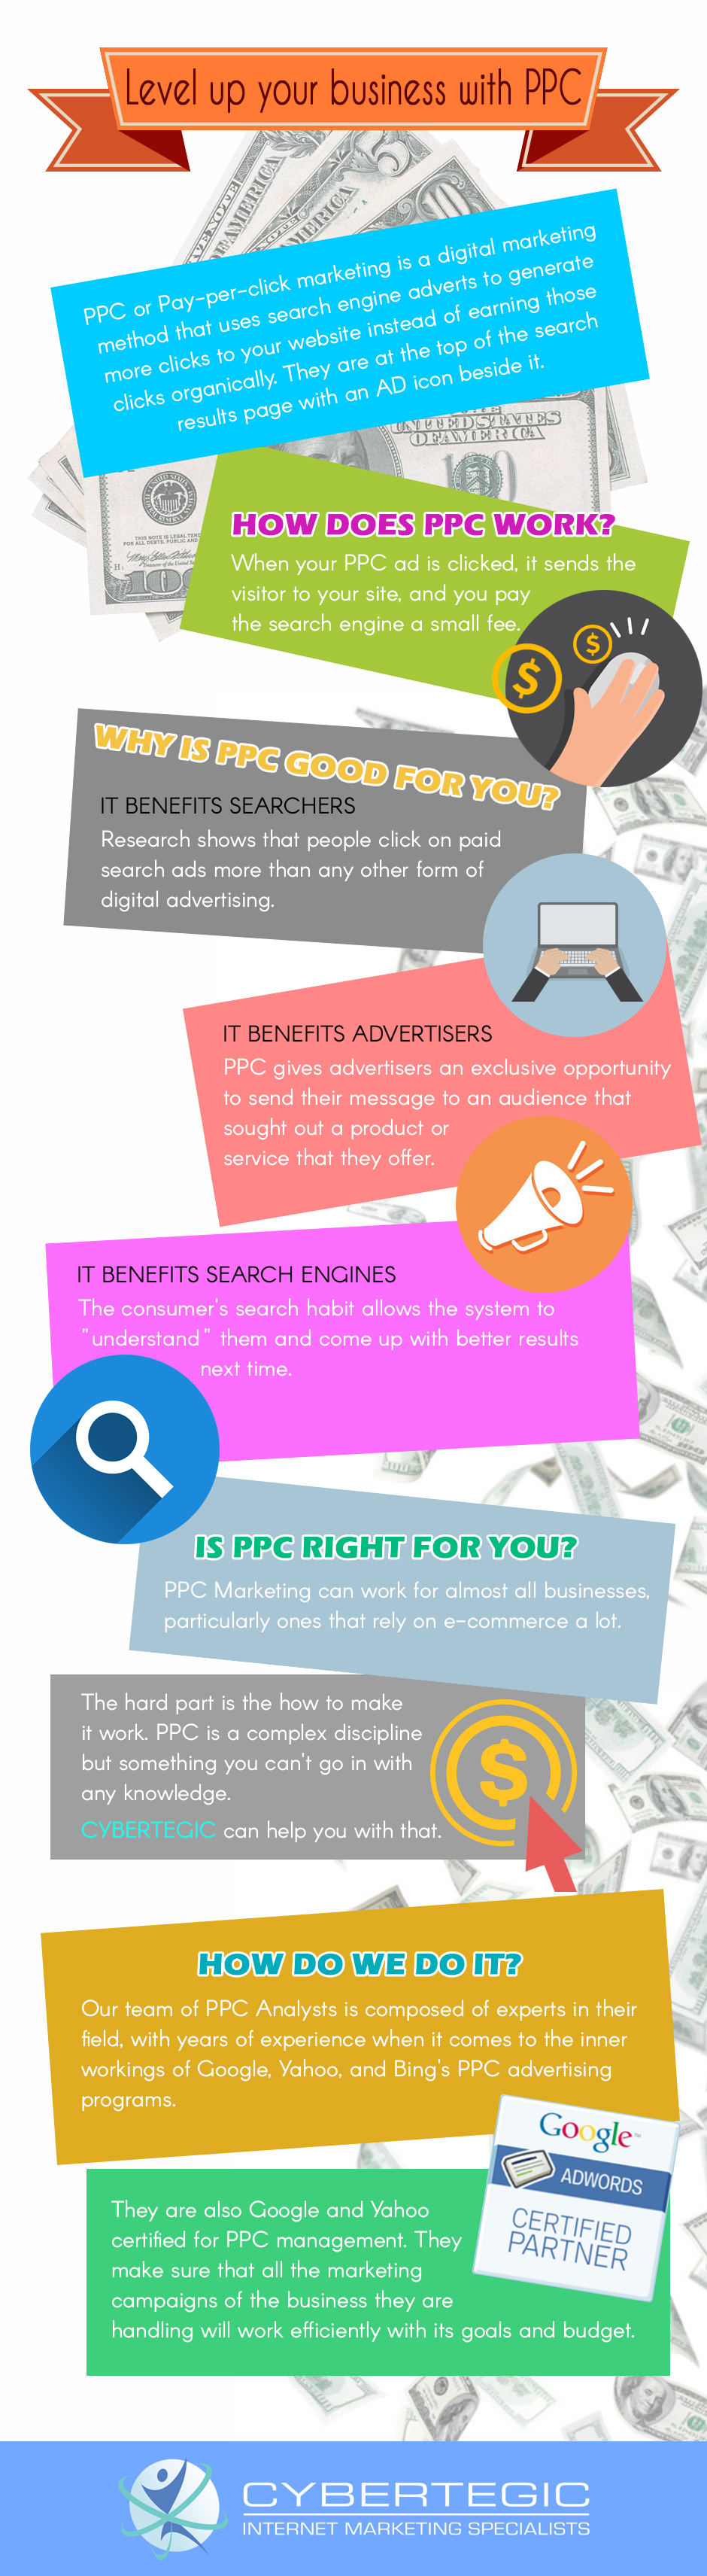 level-up-business-ppc